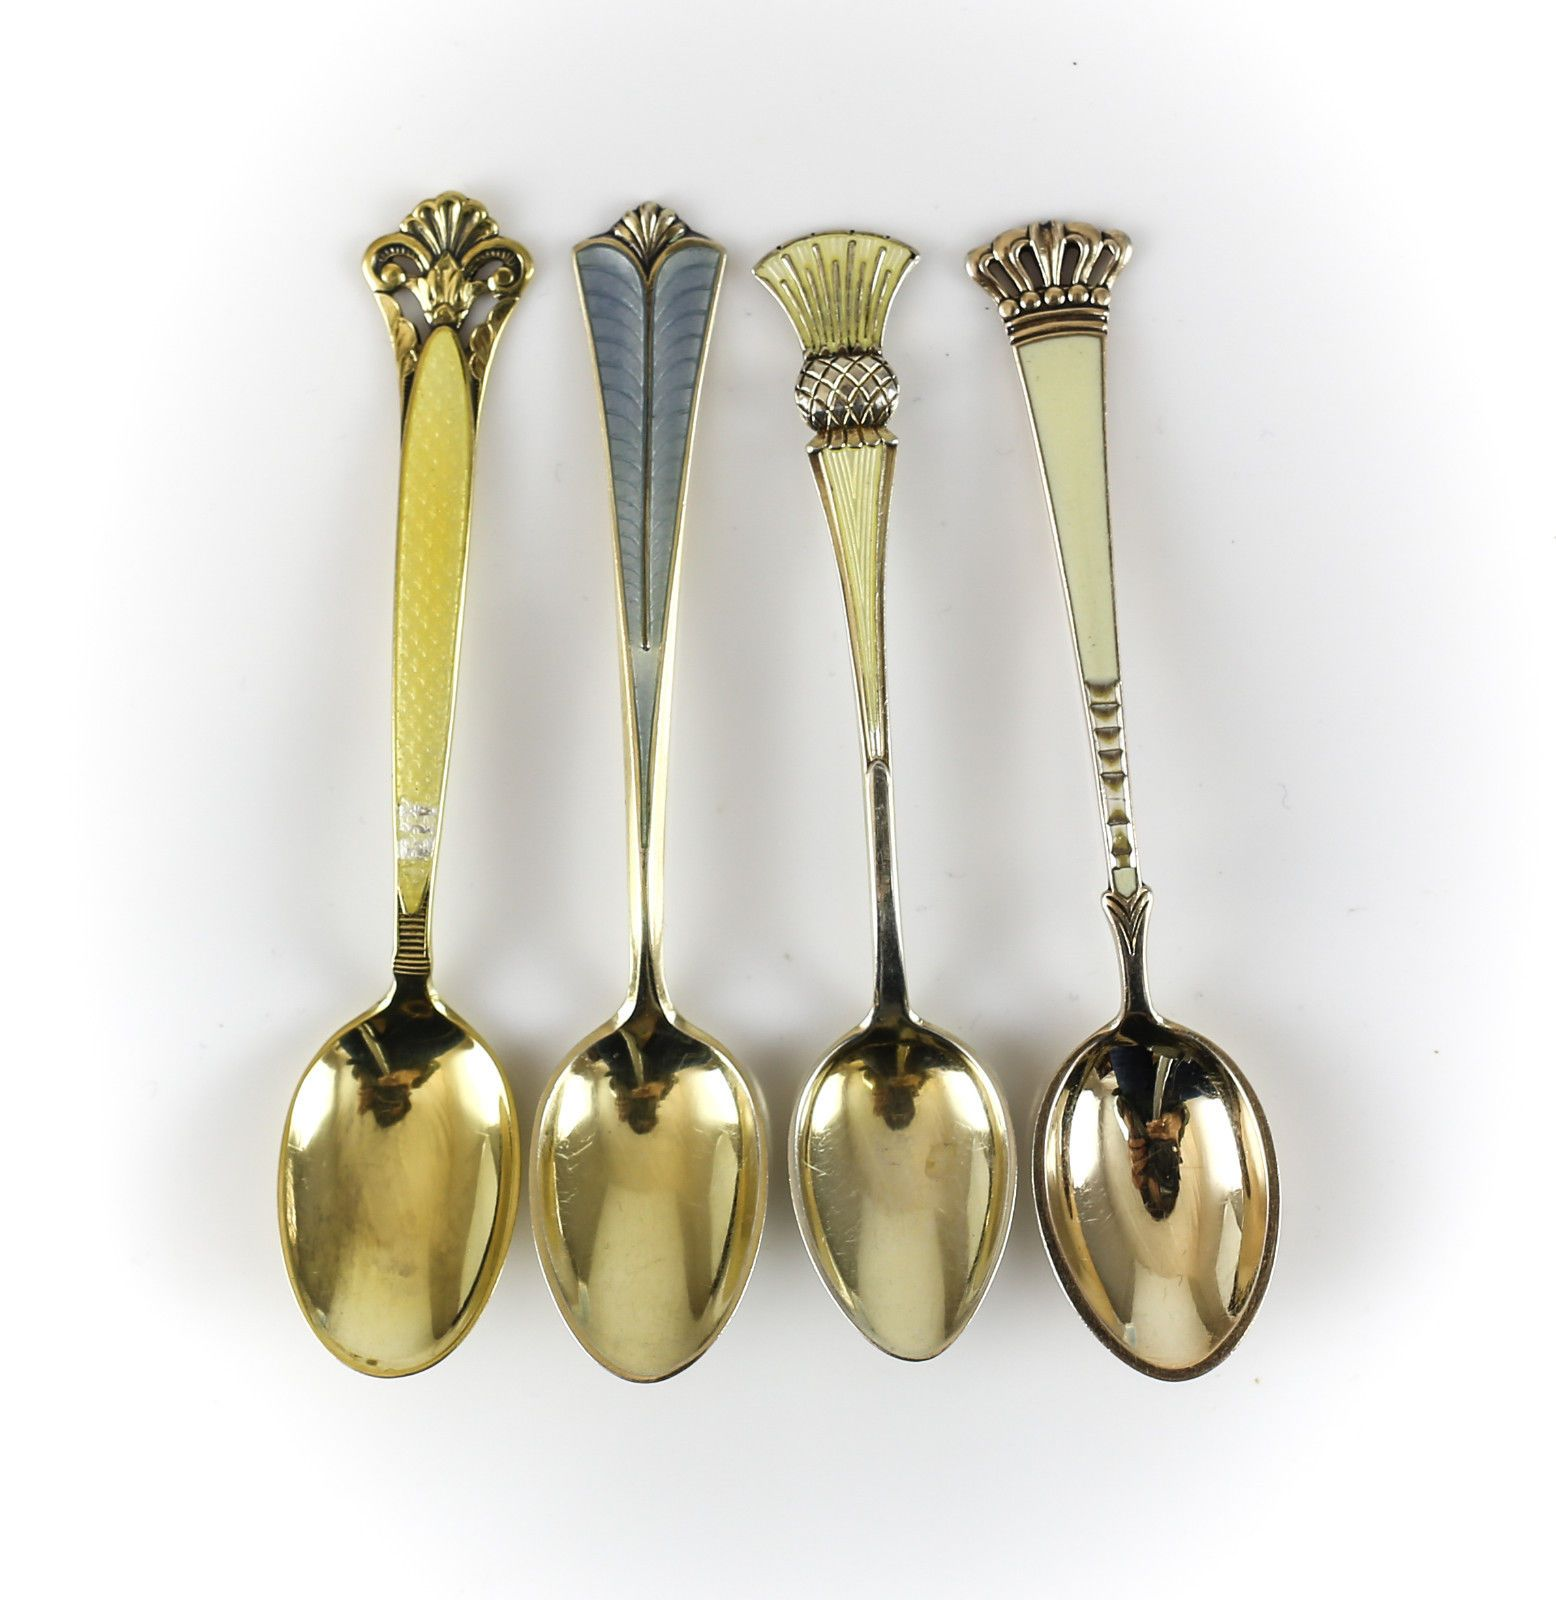 4pc. Assort Set Gilt Sterling Silver & Enamel Demitasse Spoons, c1940